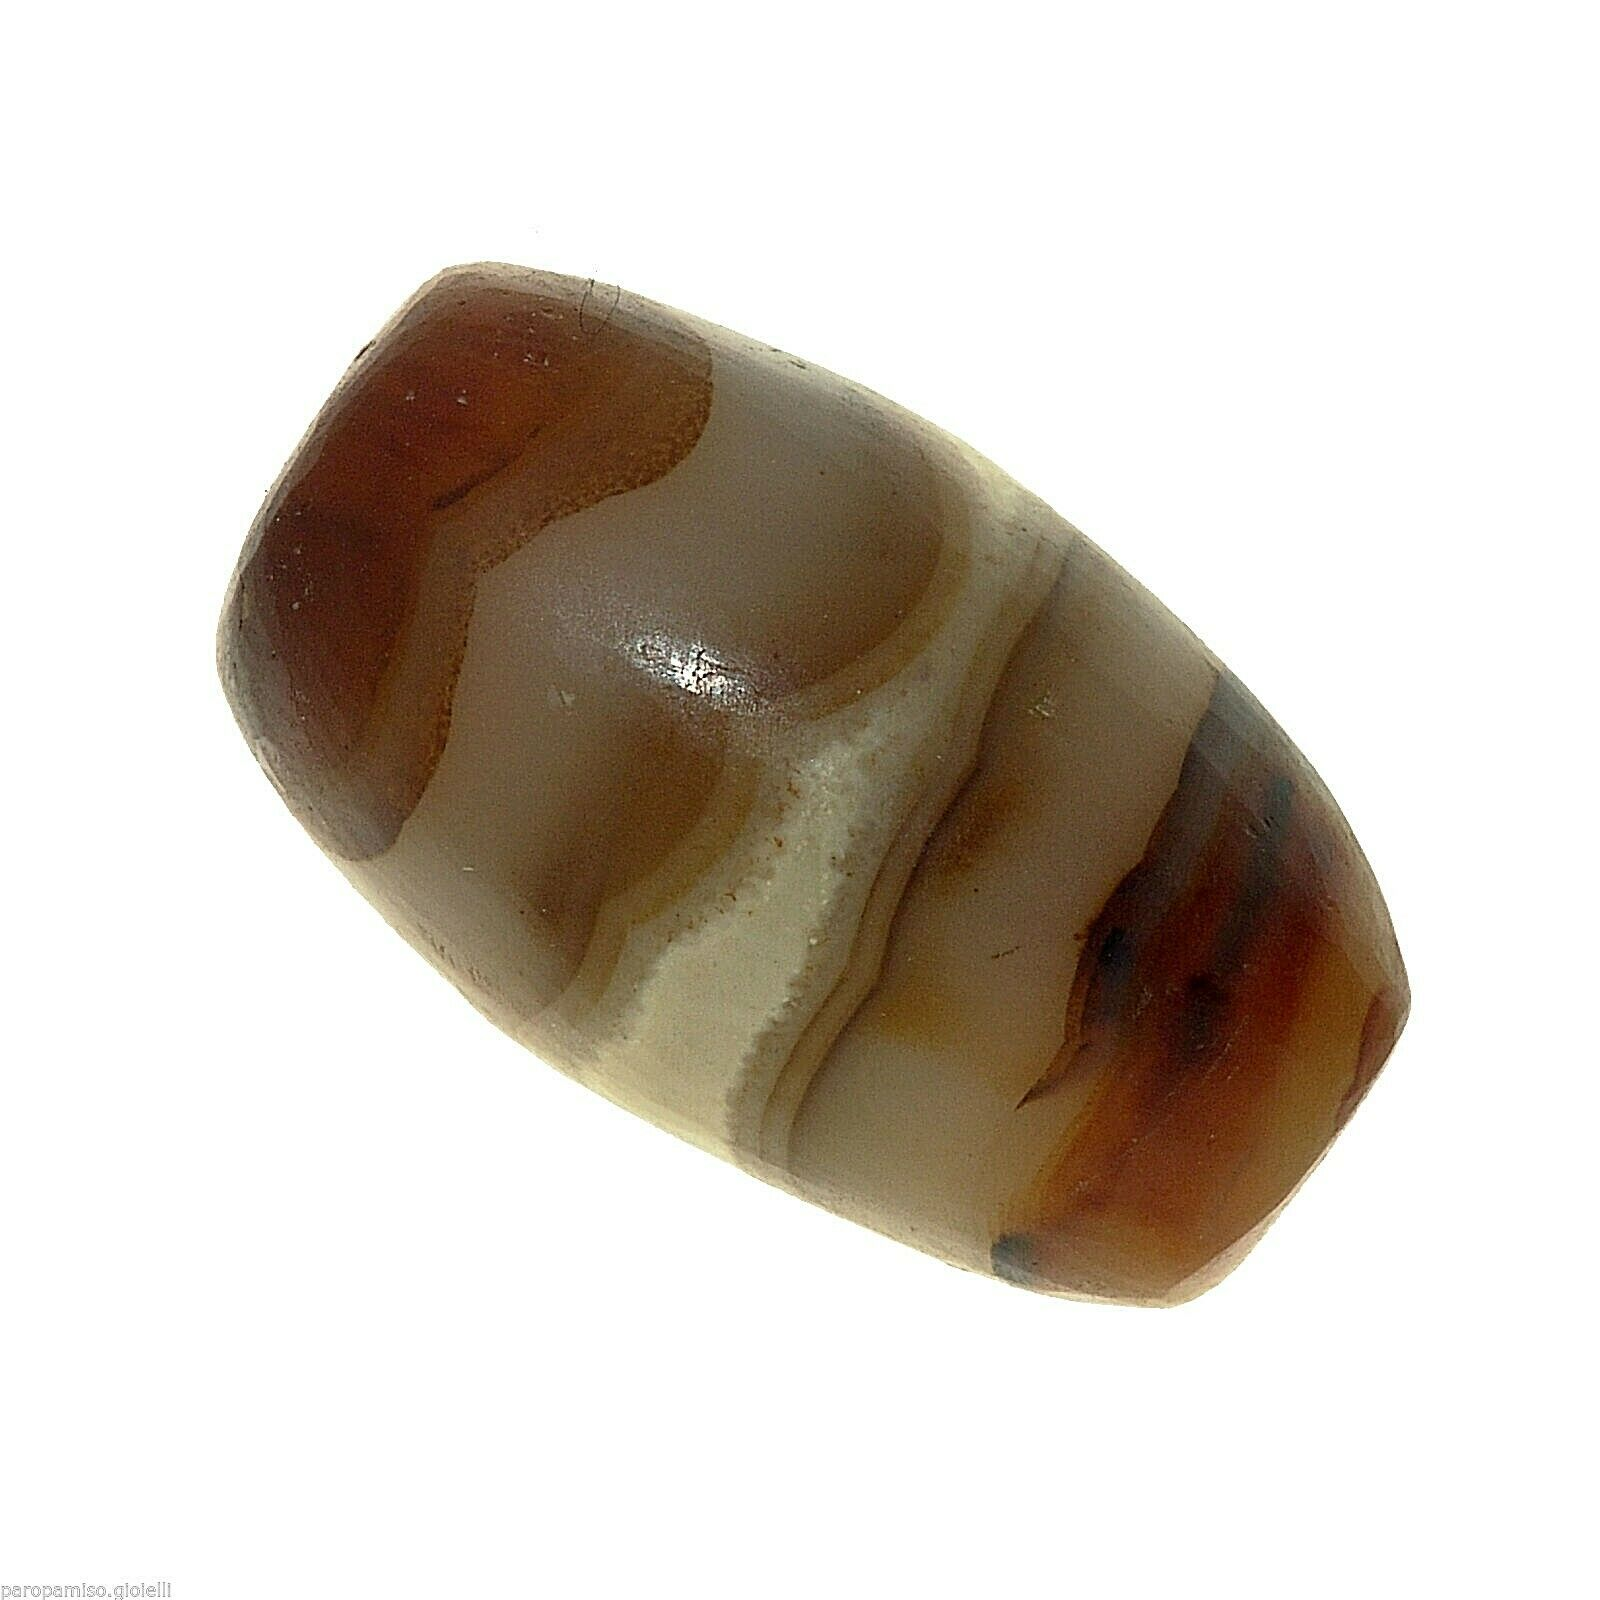 Striped Agate Bead from China-Tibet.   眼玛瑙珠      (0679)